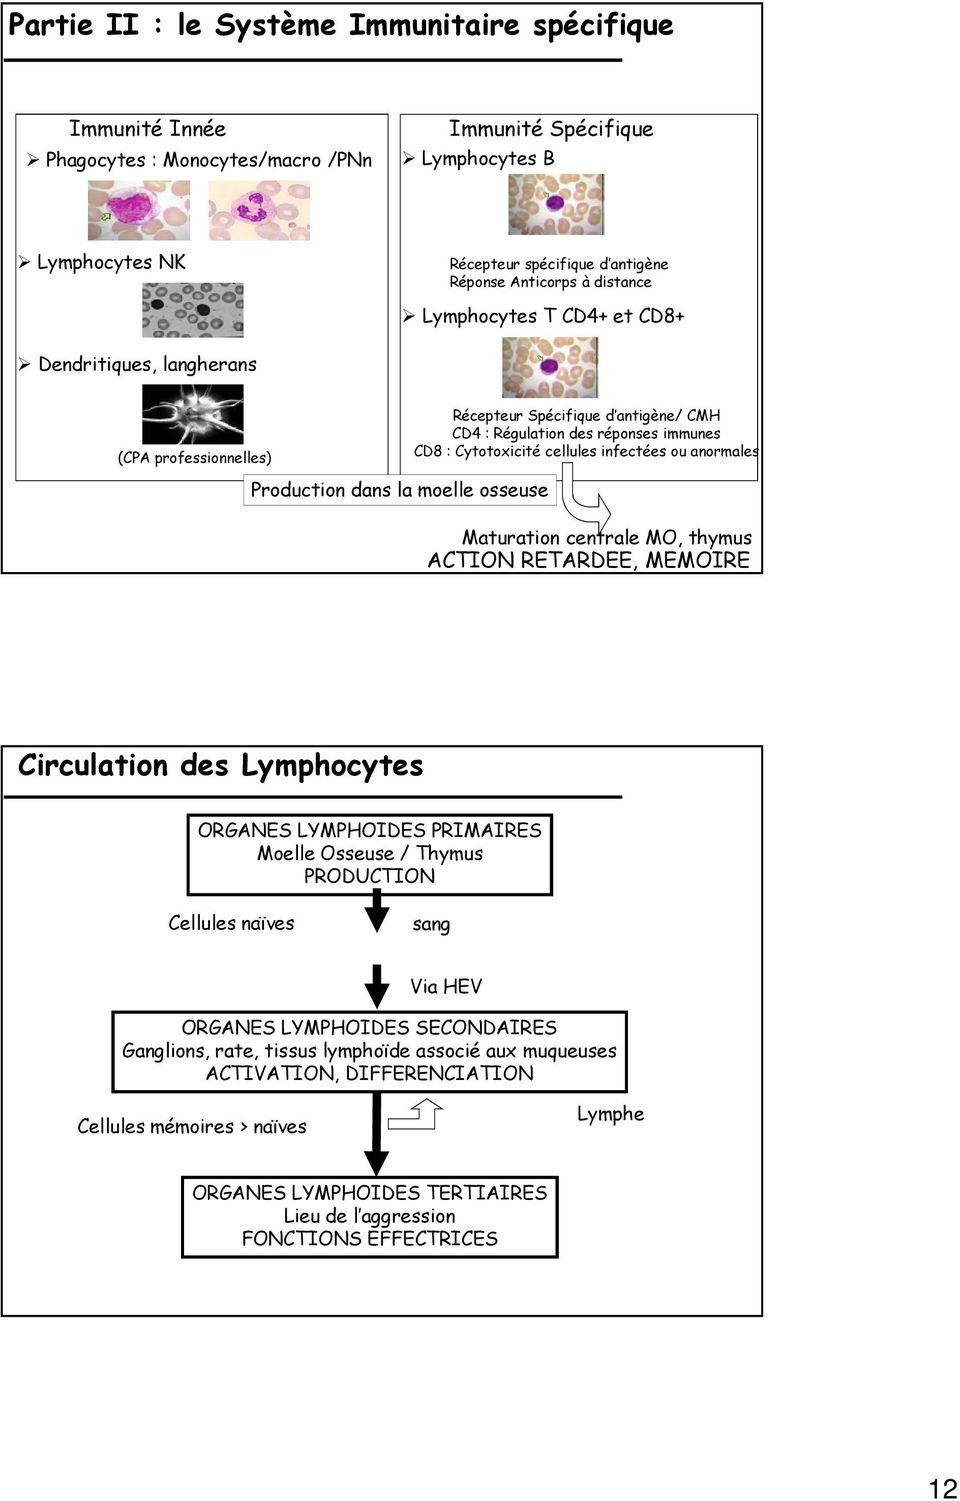 Cytotoxicité cellules infectées ou anormales Maturation centrale MO, thymus ACTION RETARDEE, MEMOIRE Circulation des Lymphocytes ORGANES LYMPHOIDES PRIMAIRES Moelle Osseuse / Thymus PRODUCTION